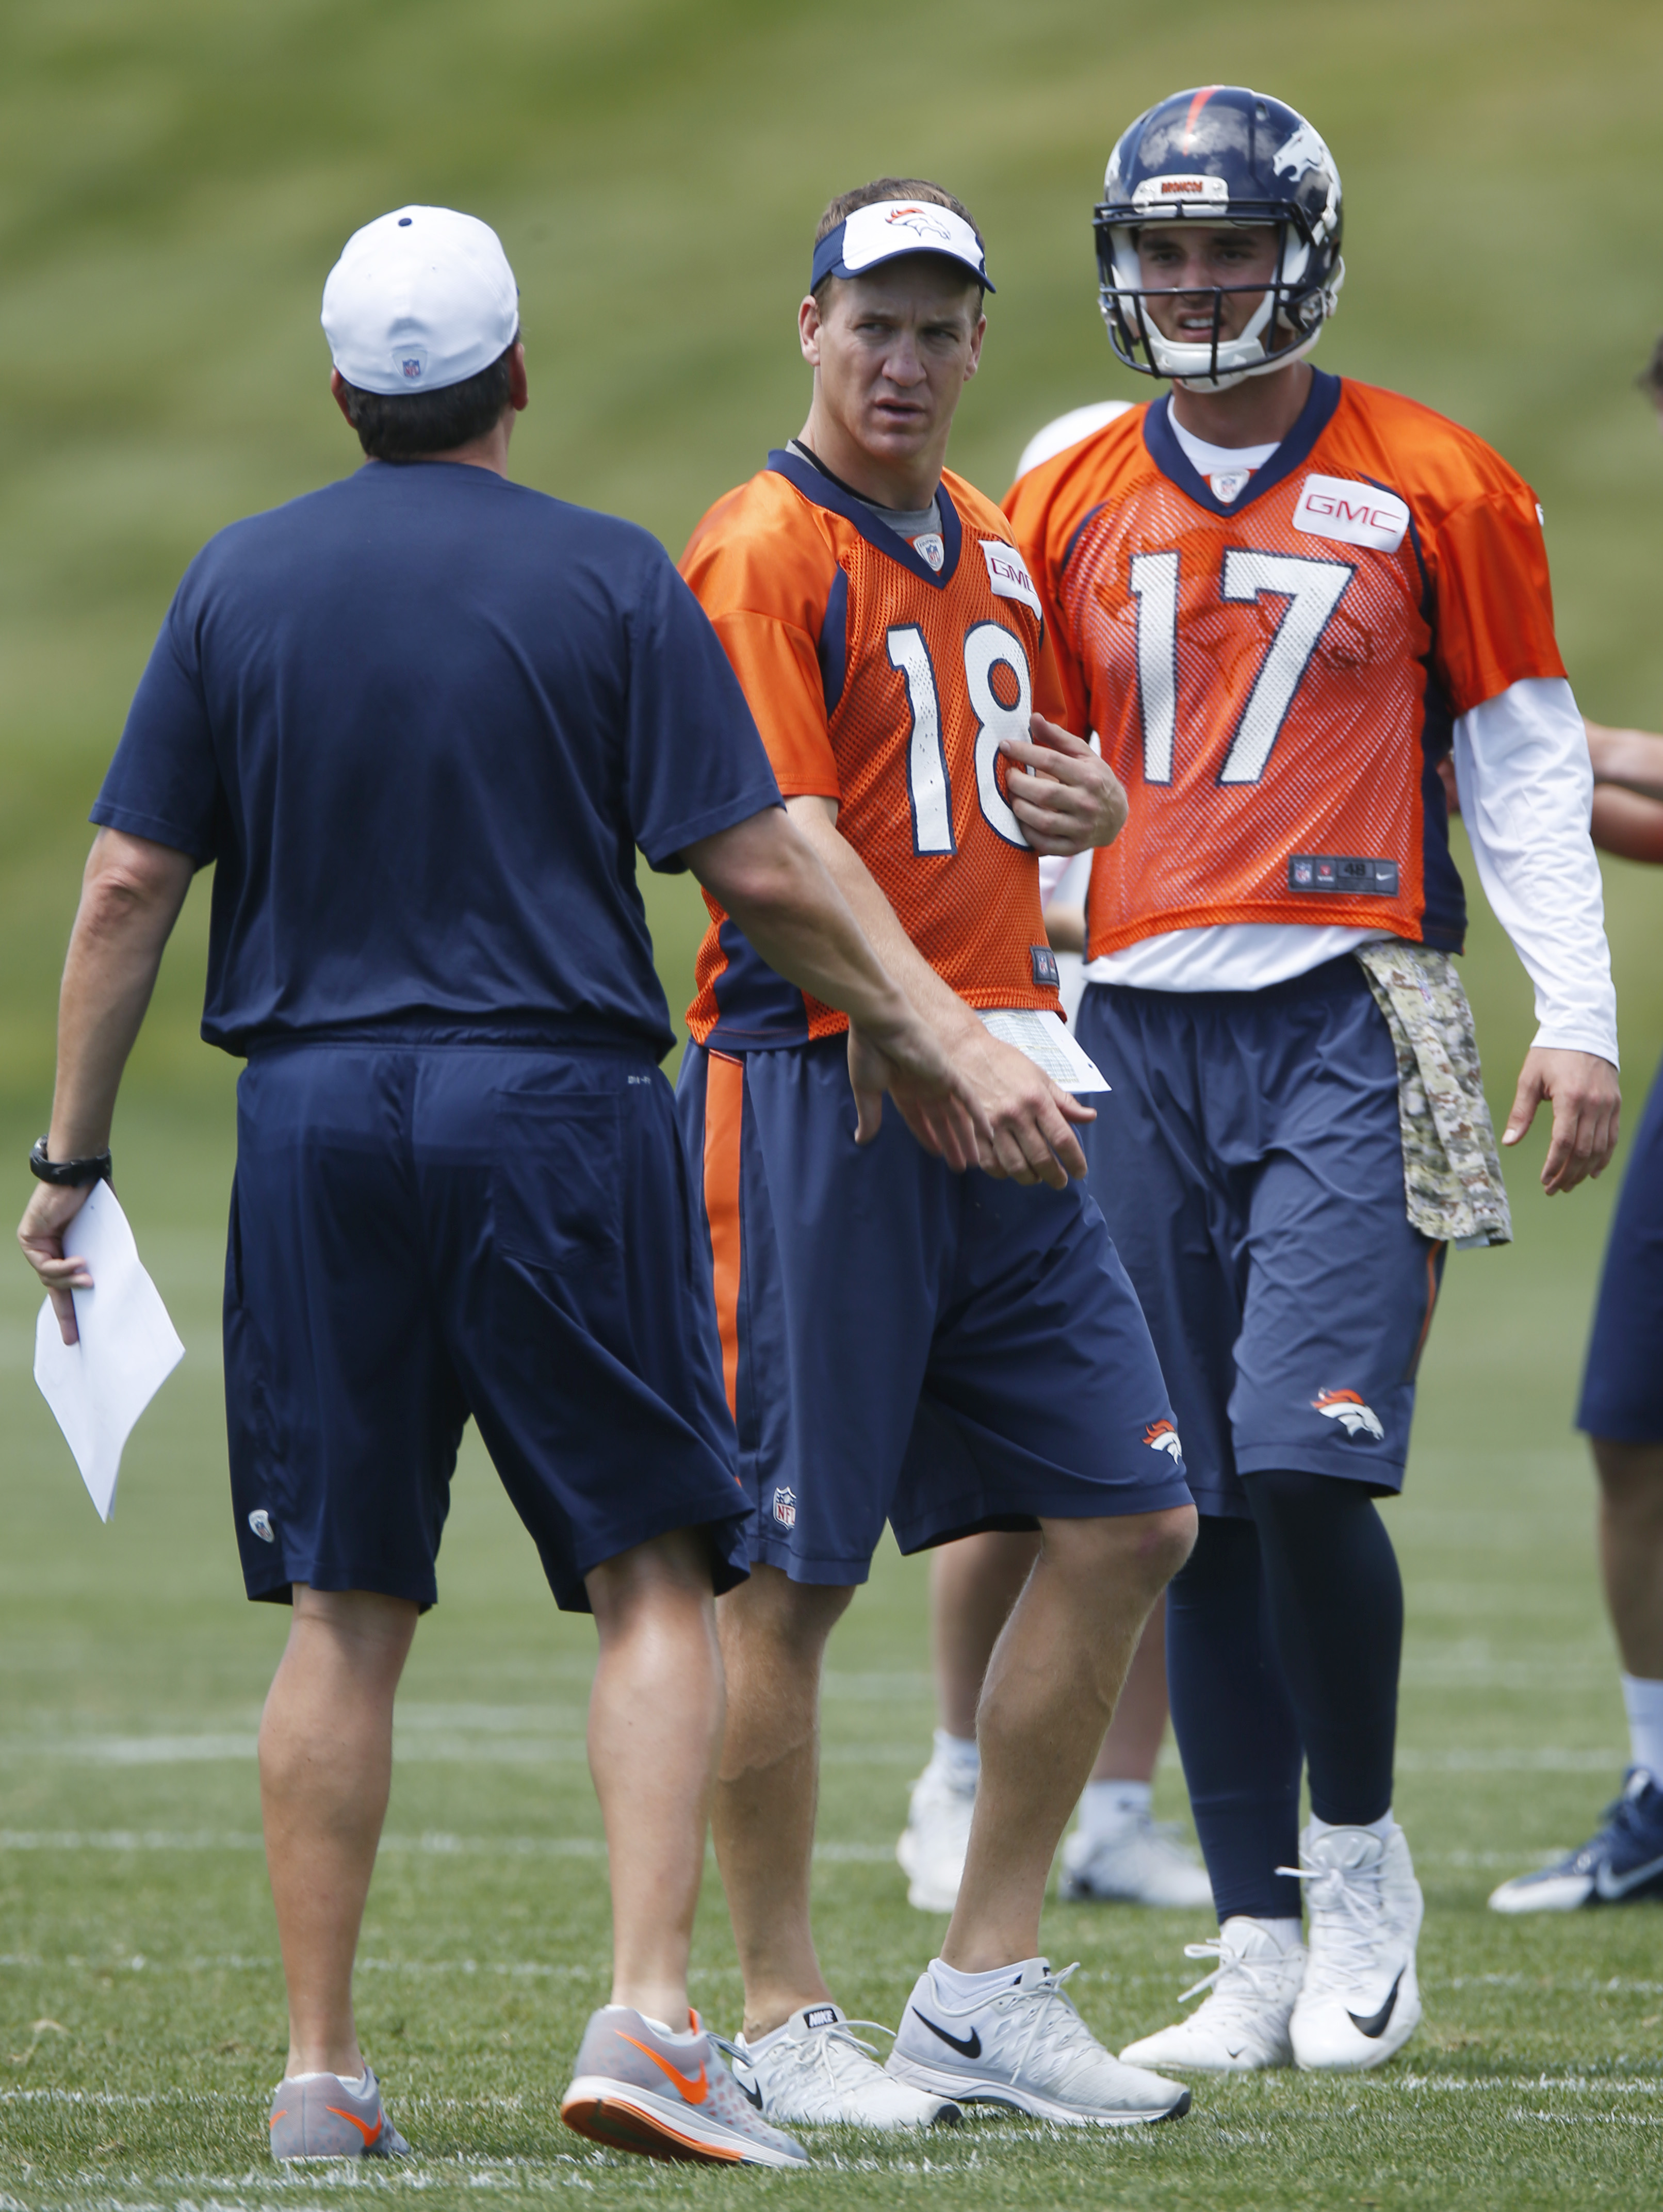 Denver Broncos quarterbacks Peyton Manning, center, and Brock Osweiler, back, confer with quarterbacks coach Greg Knapp during an organized training activity at the team's headquarters in Englewood, Colo., Monday, June 1, 2015. (AP Photo/David Zalubowski)